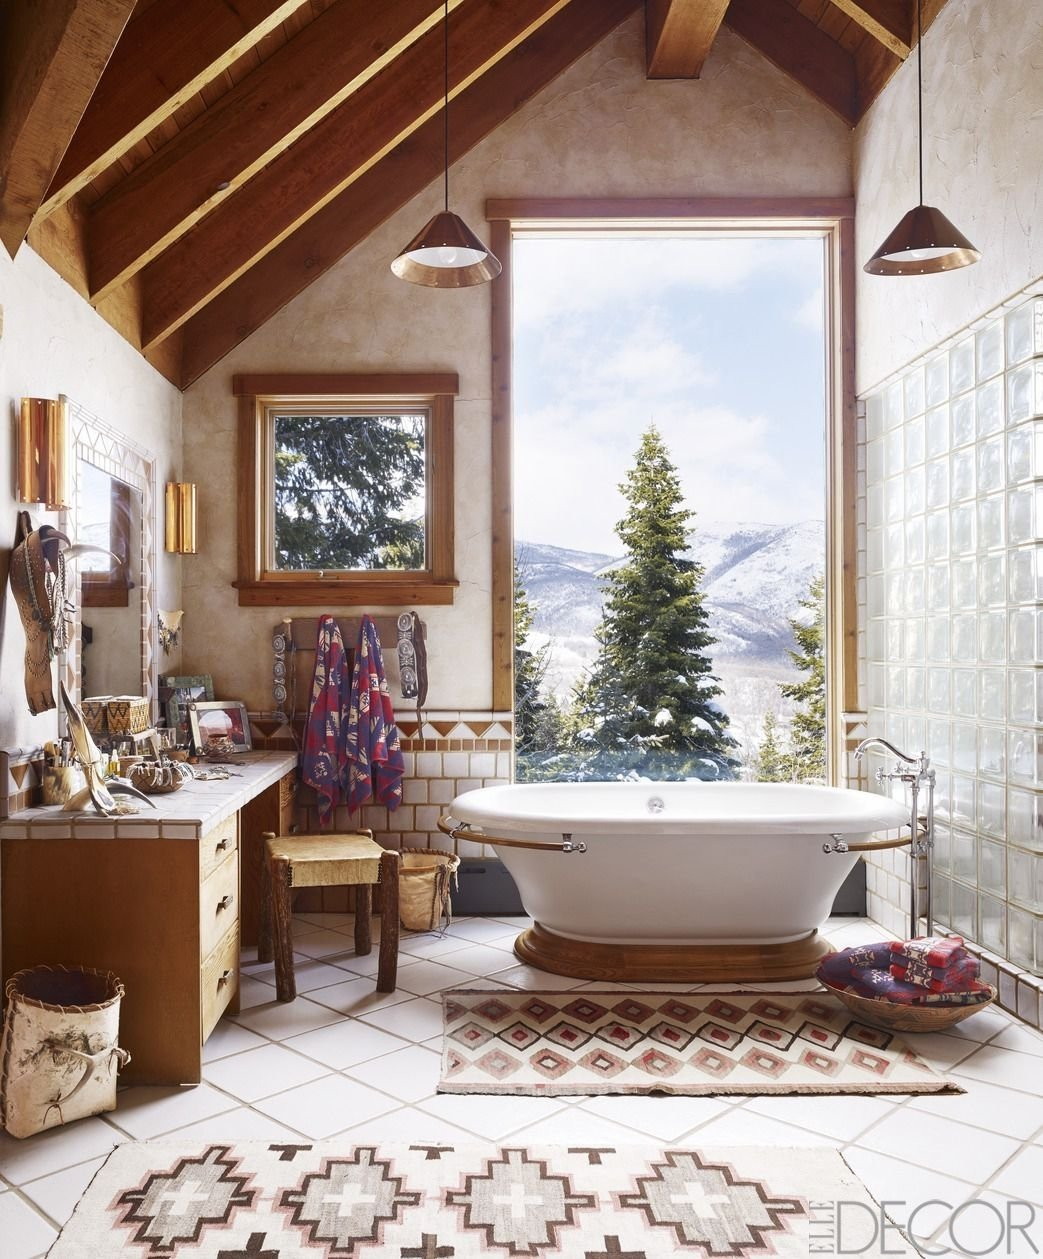 10 Most Recommended Master Bathroom Ideas Photo Gallery 100 beautiful bathrooms ideas pictures bathroom design photo gallery